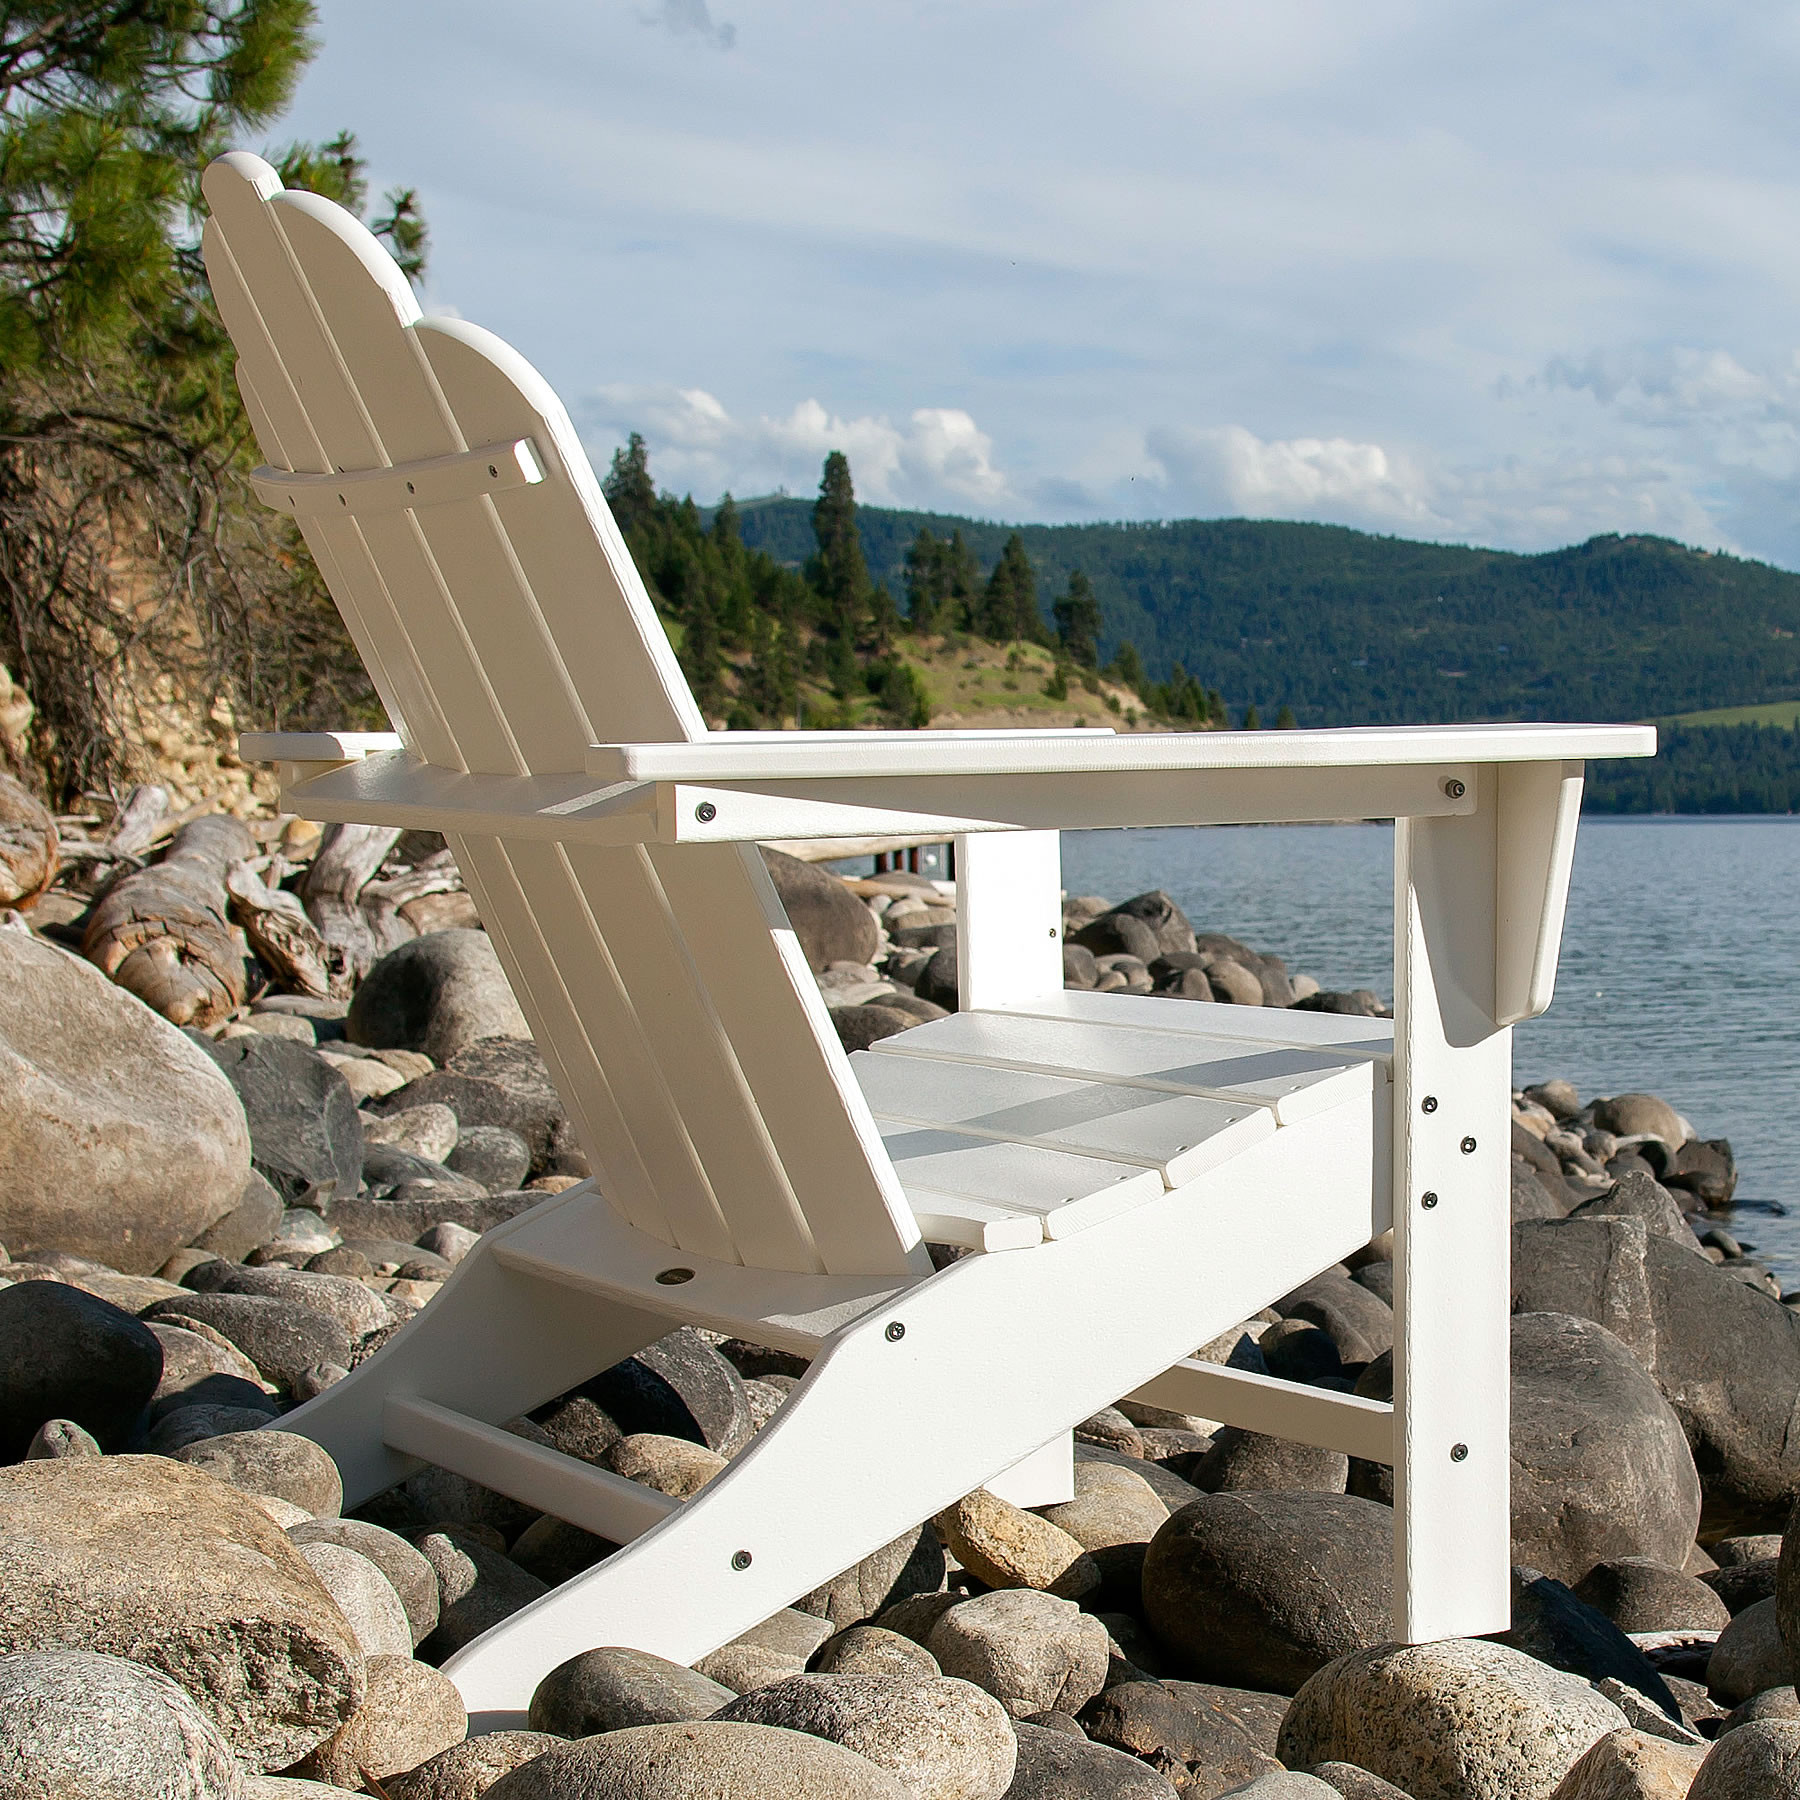 POLYWOOD Long Island Adirondack Chair Long Island POLYWOOD - Outdoor furniture long island